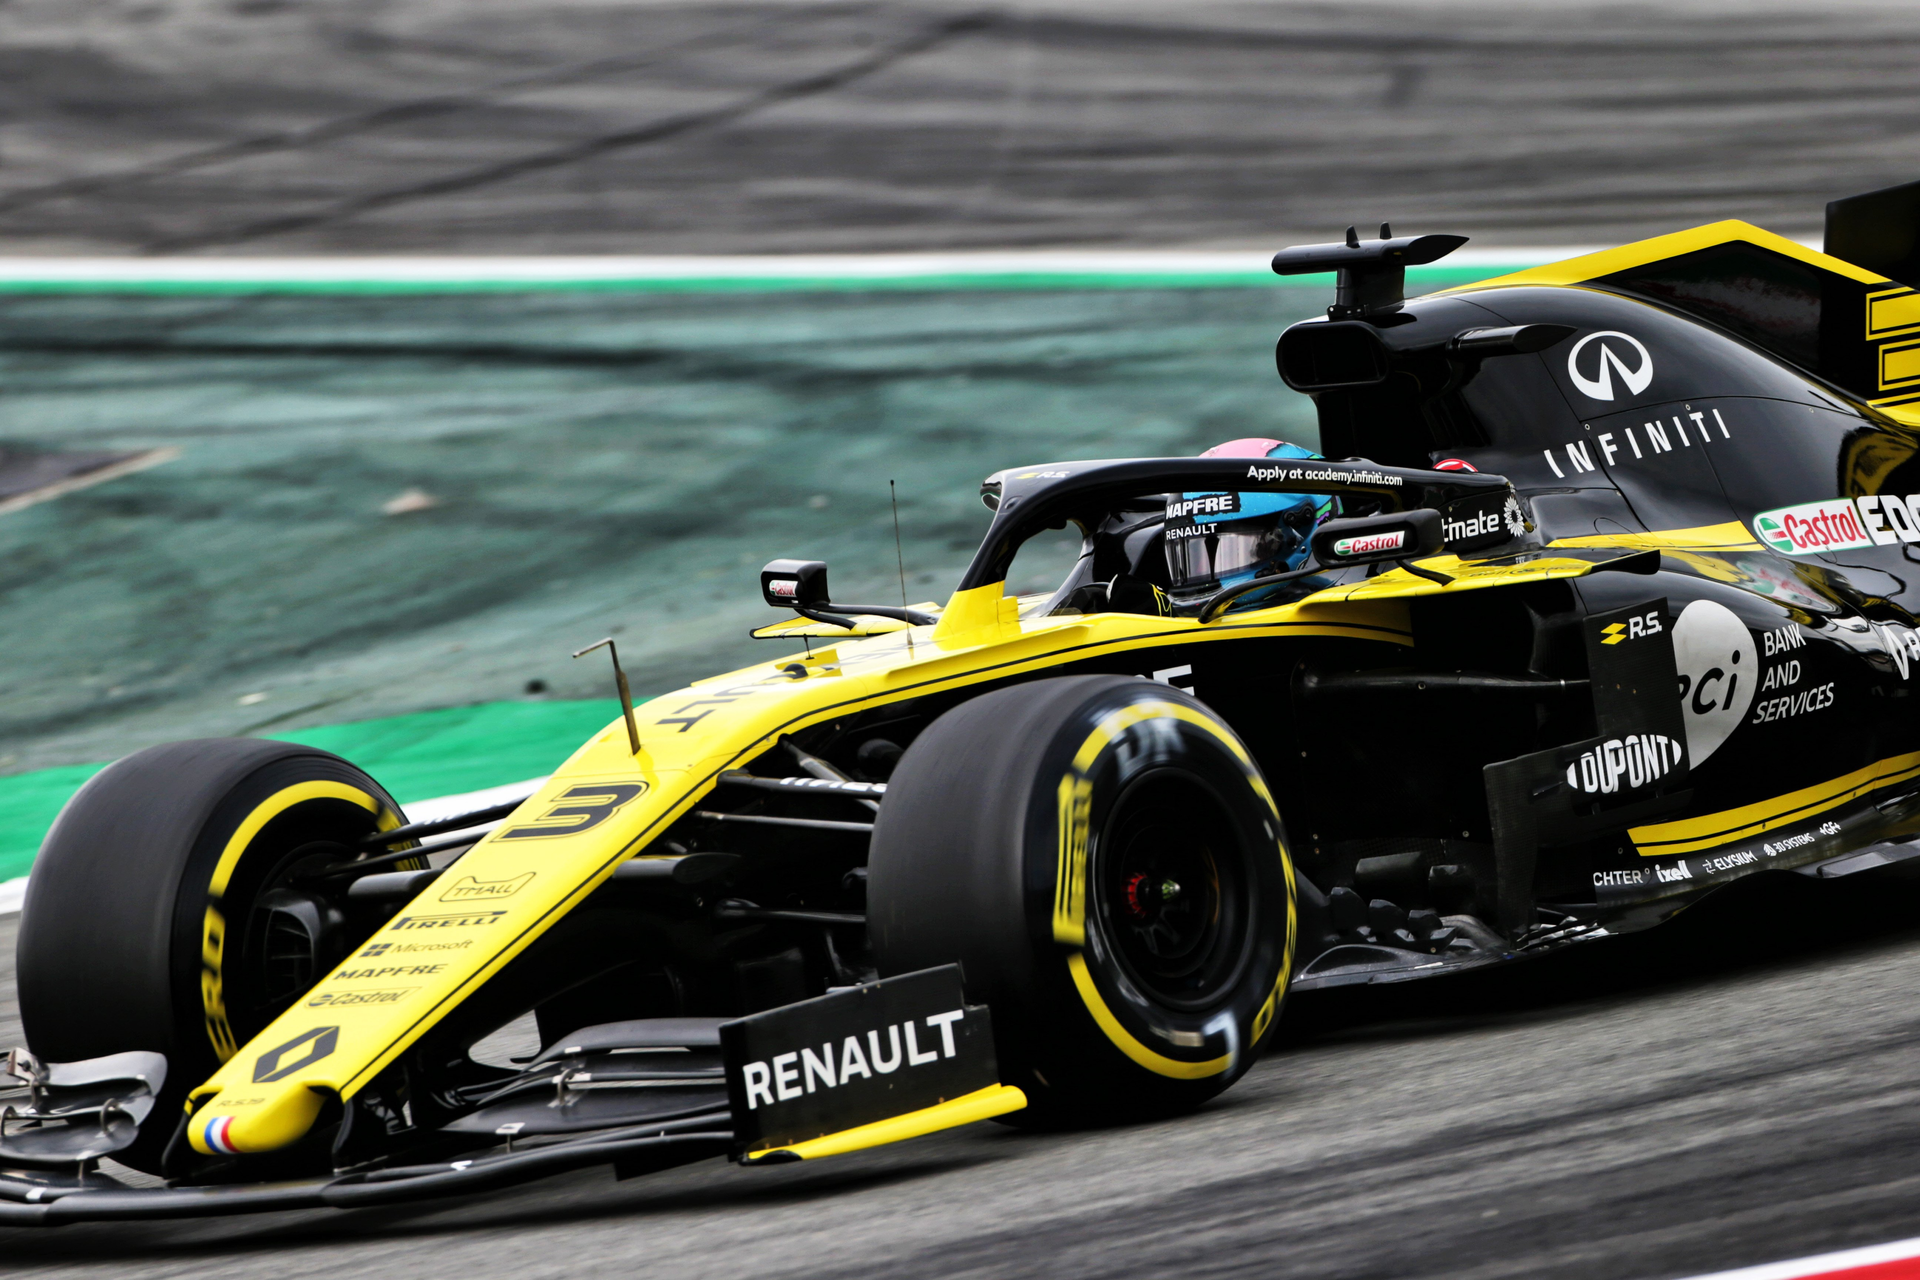 The additive manufacturing agreement will speed the development and delivery of 3D-printed racecar parts for the Renault R.S.19 racecar.